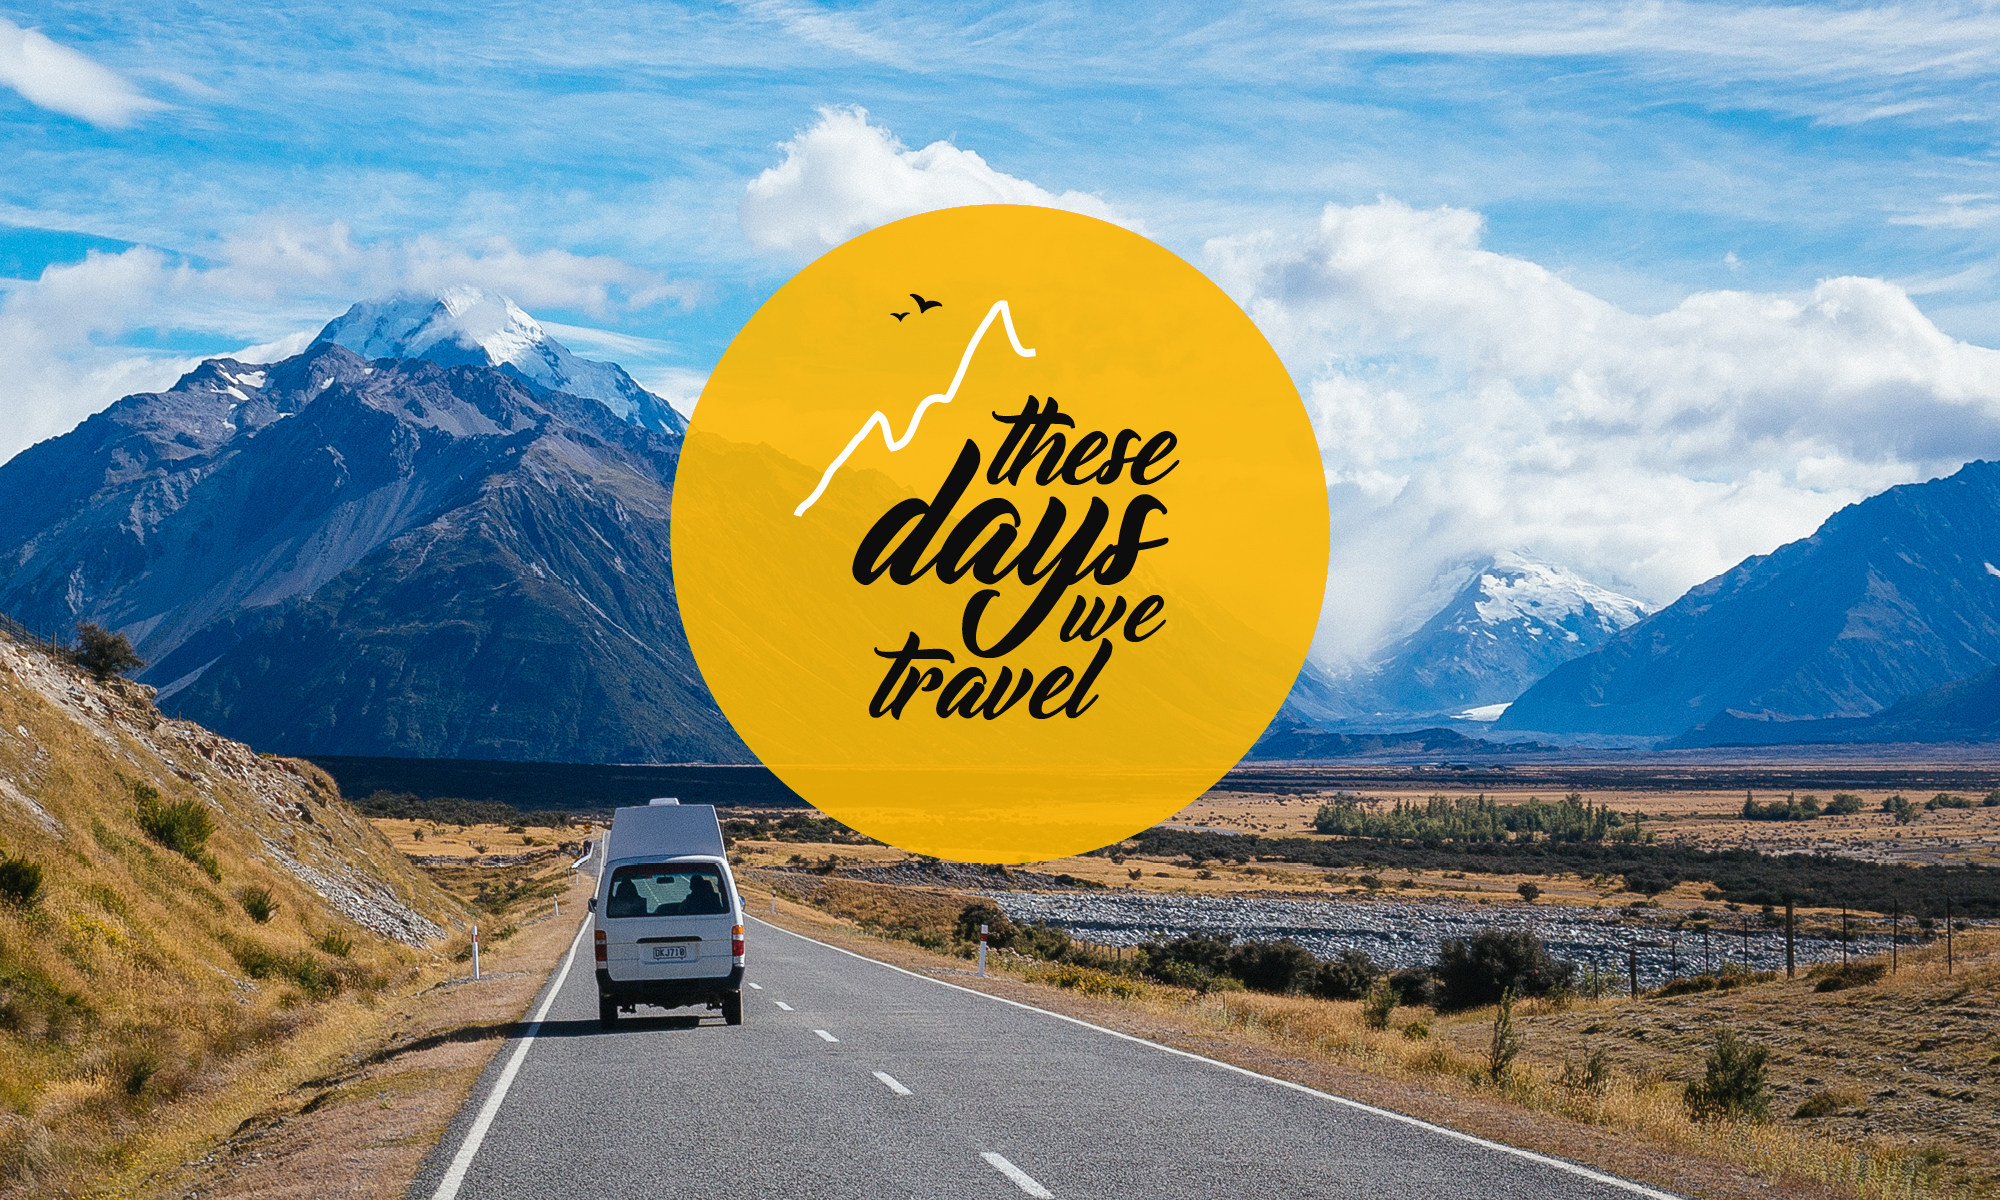 these days we travel